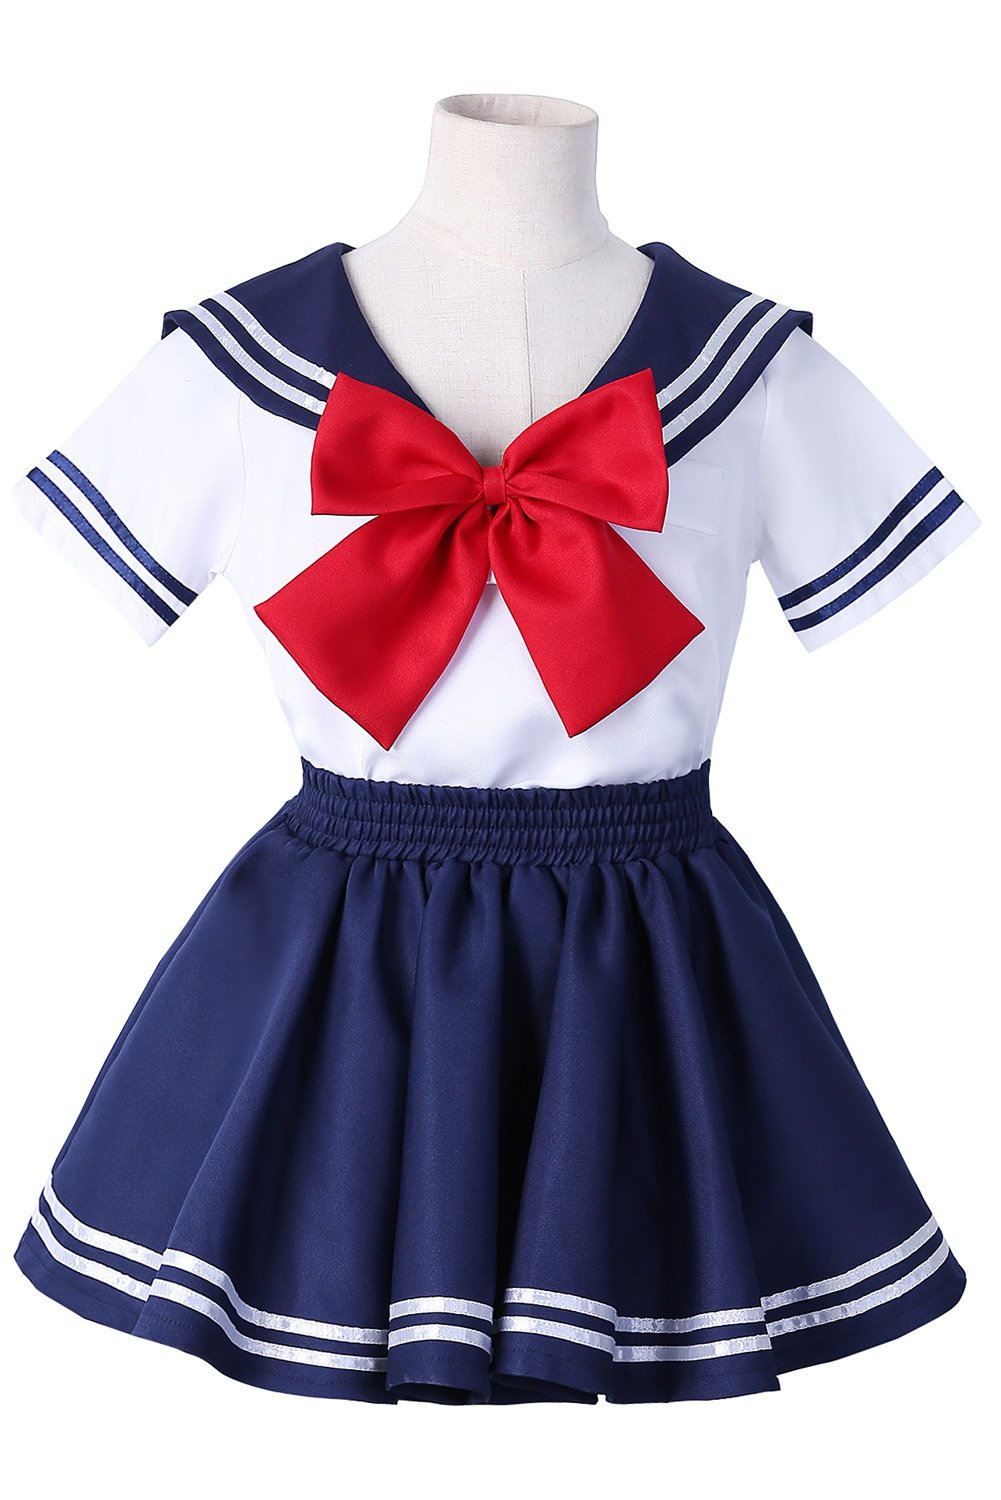 Joyshop Anime Kids Girl's School Uniform Sailor Dress,Small